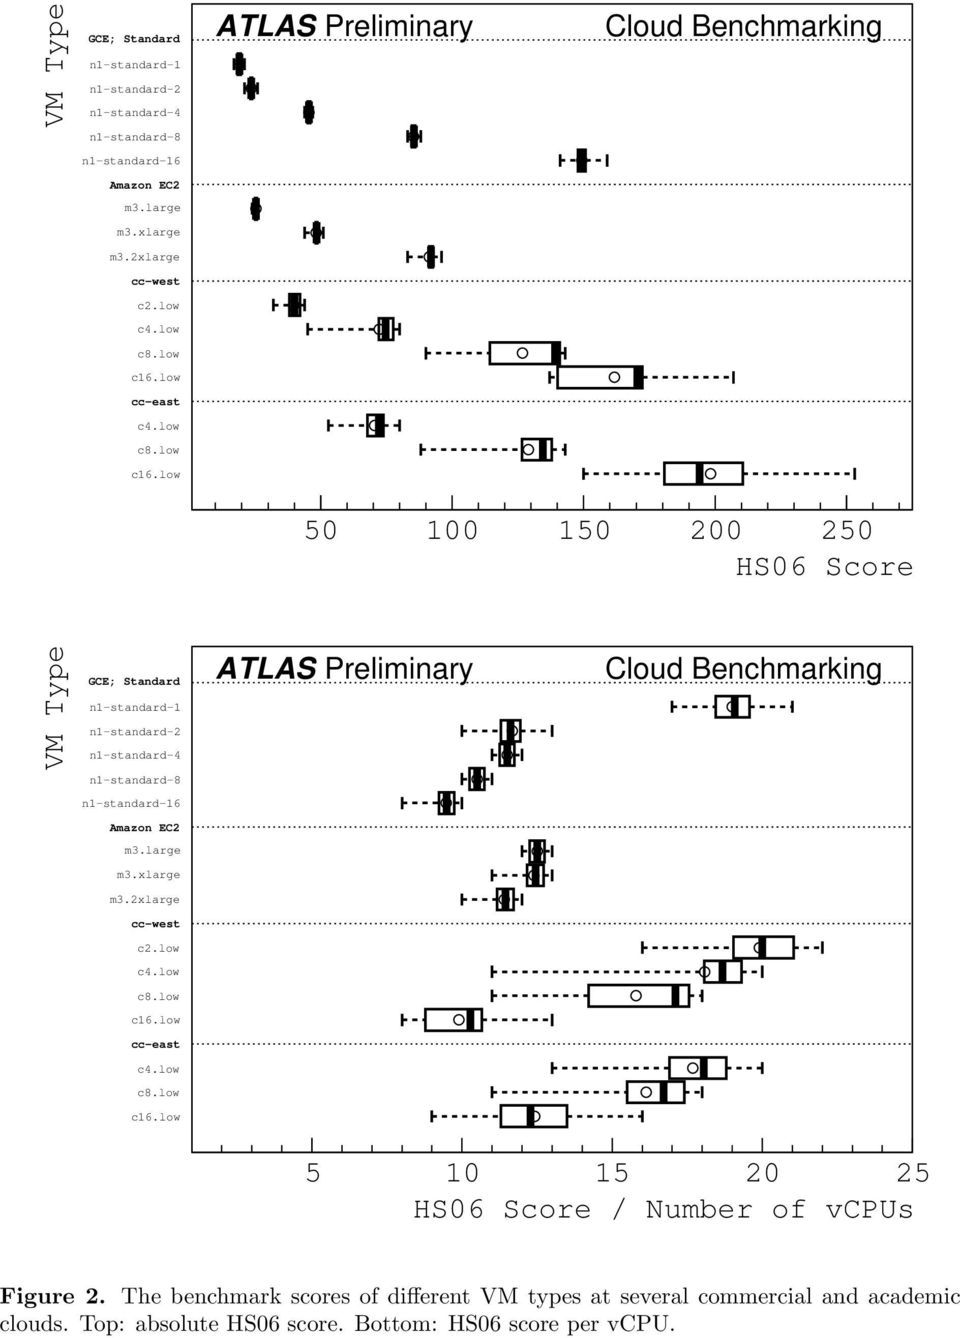 The benchmark scores of different VM types at several commercial and academic clouds. Top: absolute HS06 score. Bottom: HS06 score per vcpu.